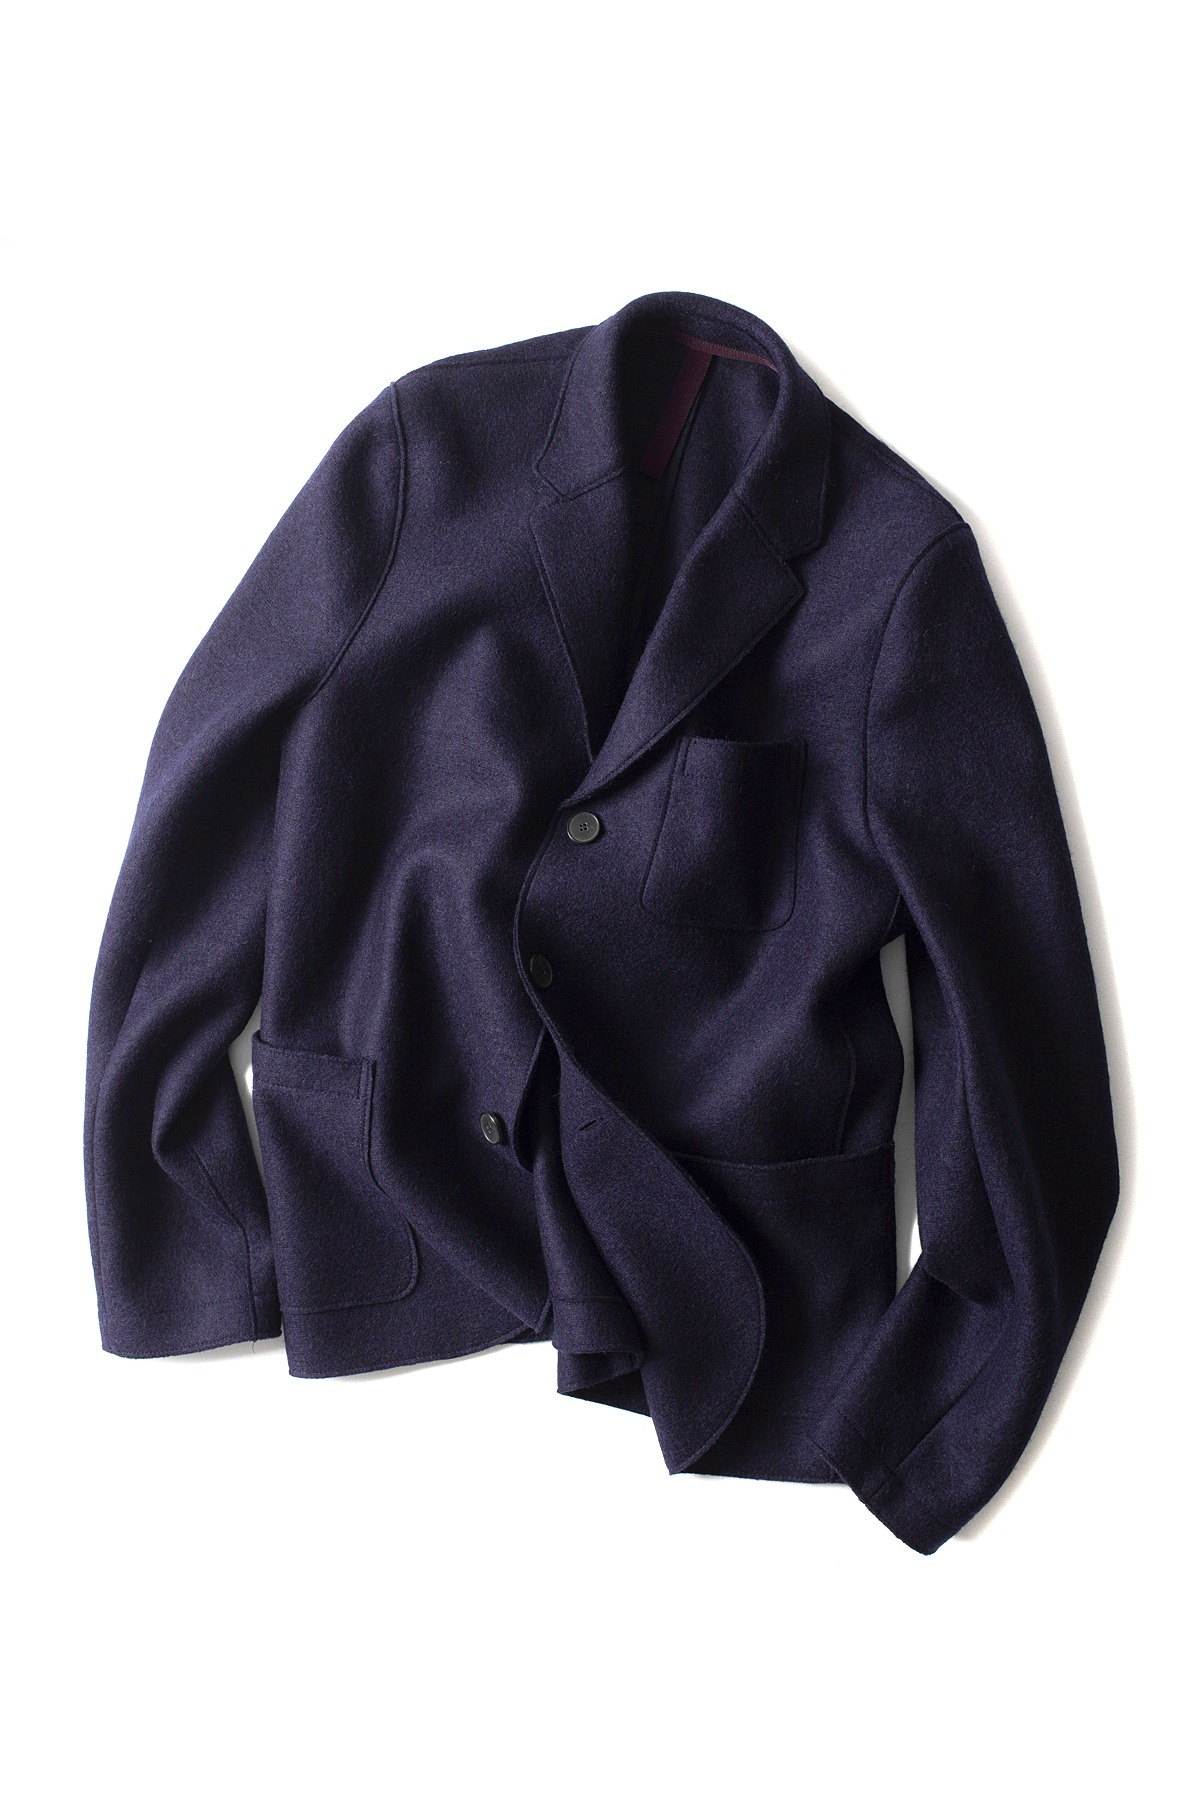 Harris Wharf London : 3.B Boxy Pressed Wool Jacket (Navy)